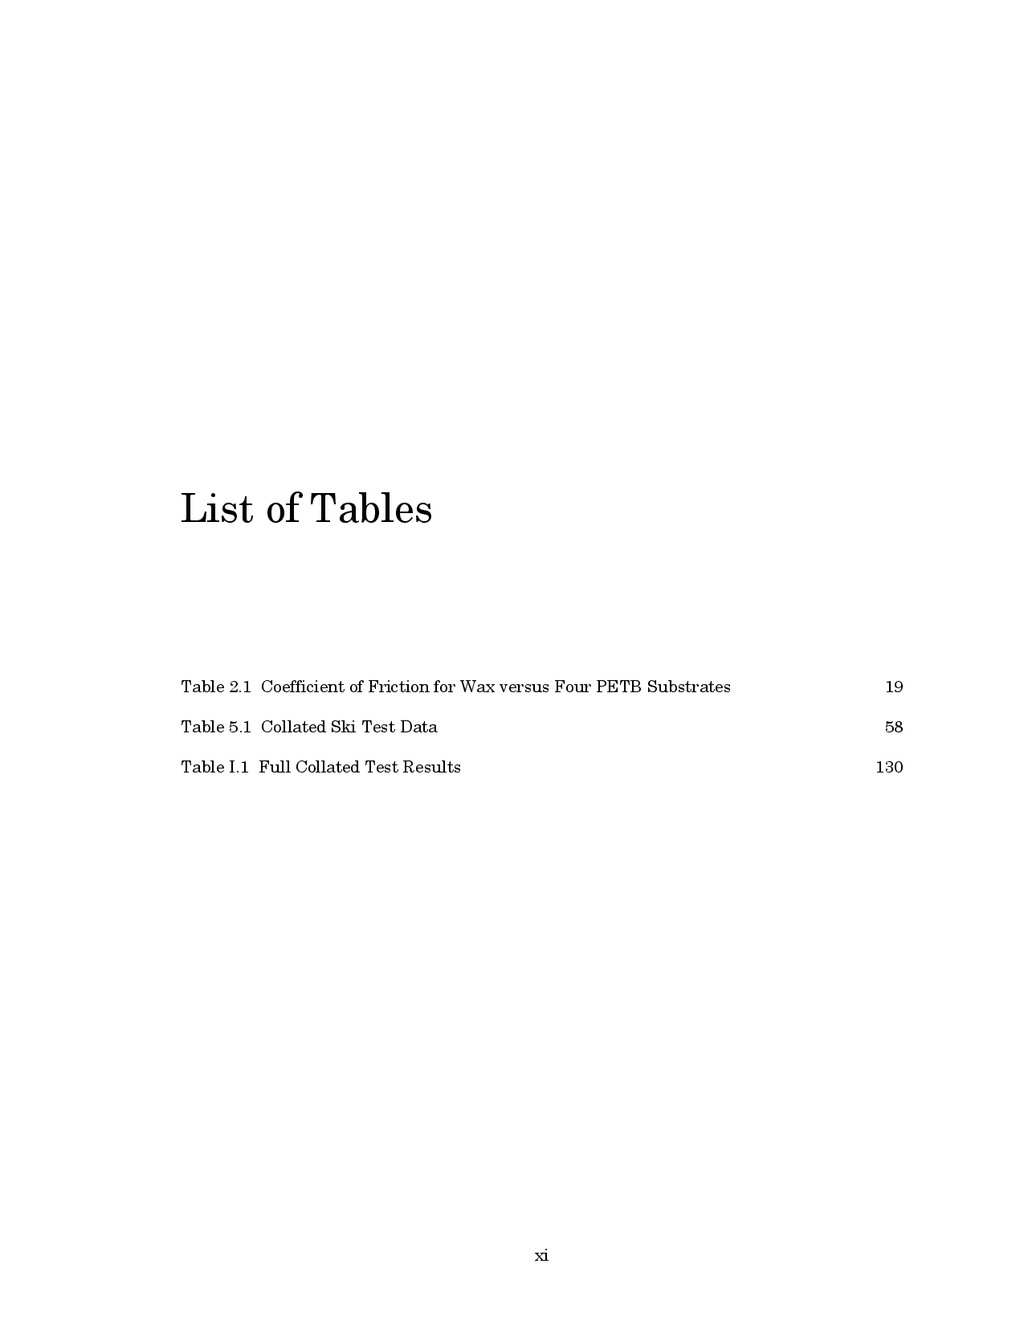 xi List of Tables Table 2.1 Coefficient of Fric...